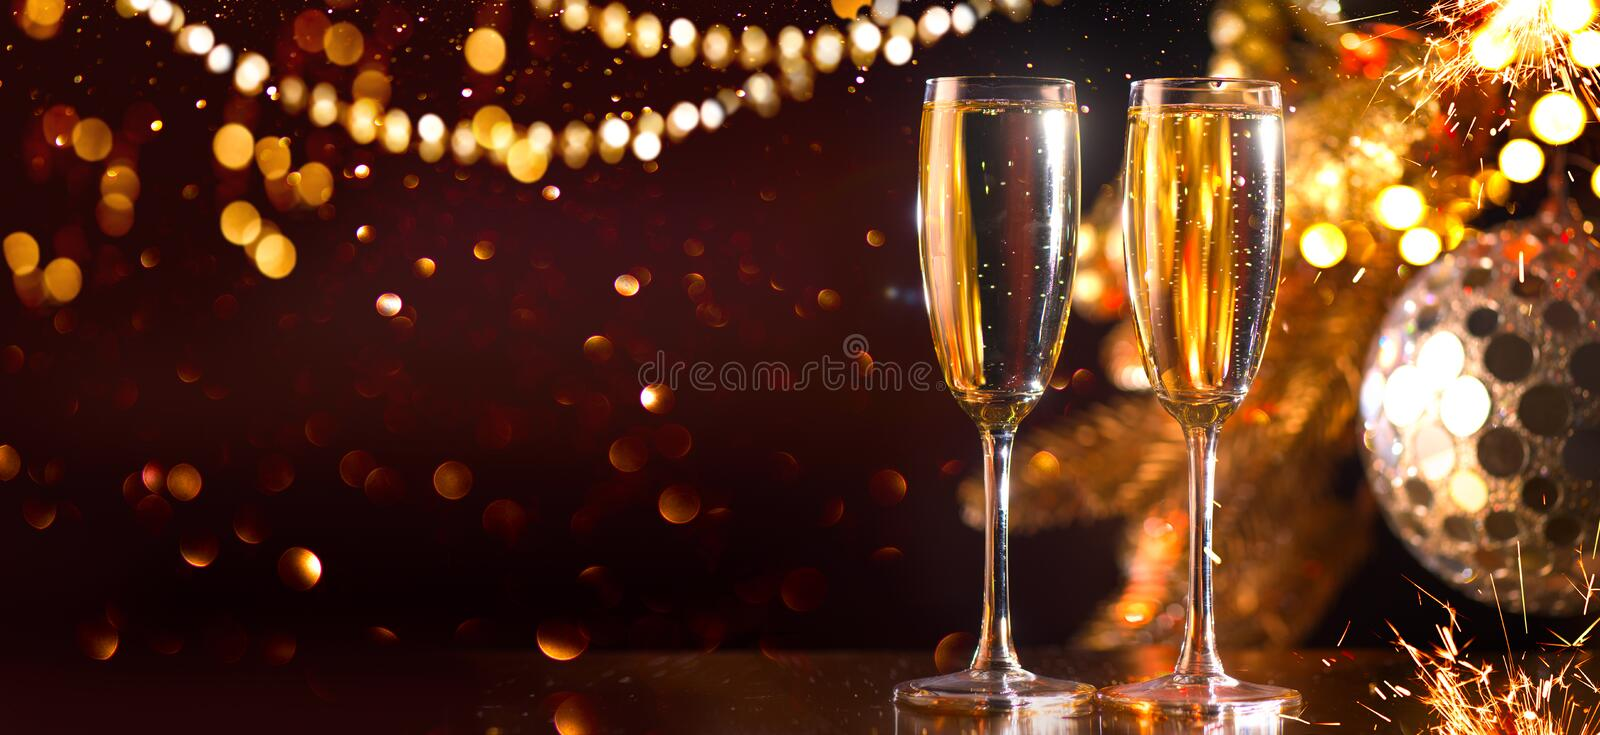 Holiday Champagne Flute over Golden glowing background. Christmas and New Year celebration. Two Flutes with Sparkling Wine royalty free stock photo